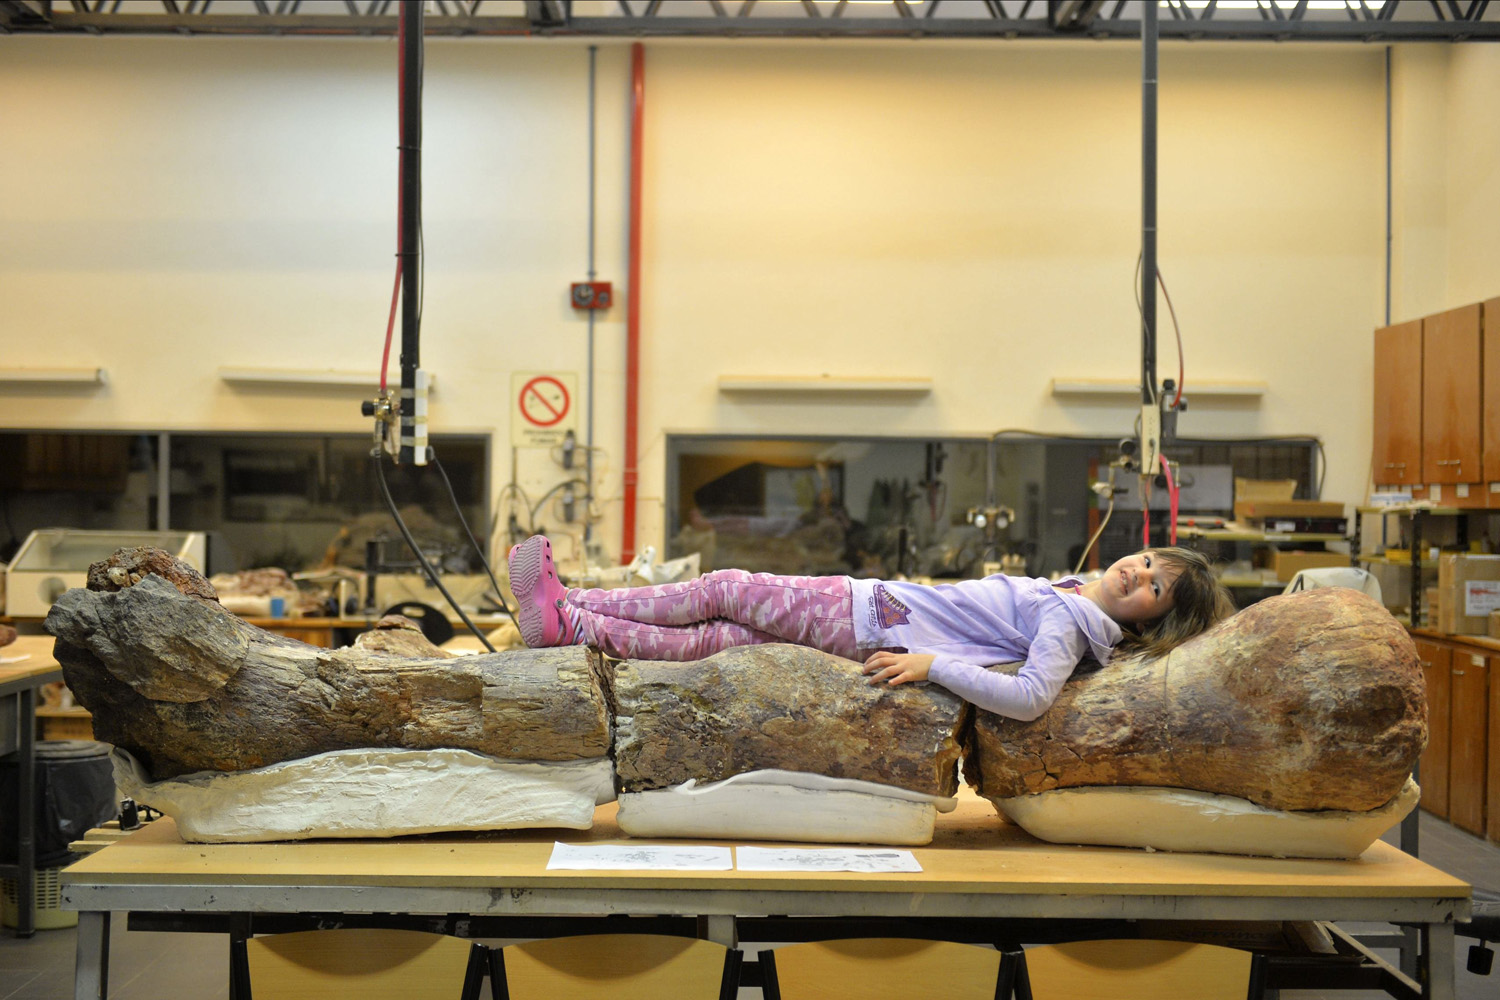 A young girl named Marlene lies over the original fossilized femur of a dinosaur displayed on exhibition at the Egidio Feruglio Museum in the Argentina's Patagonian city of Trelew on May 18, 2014.